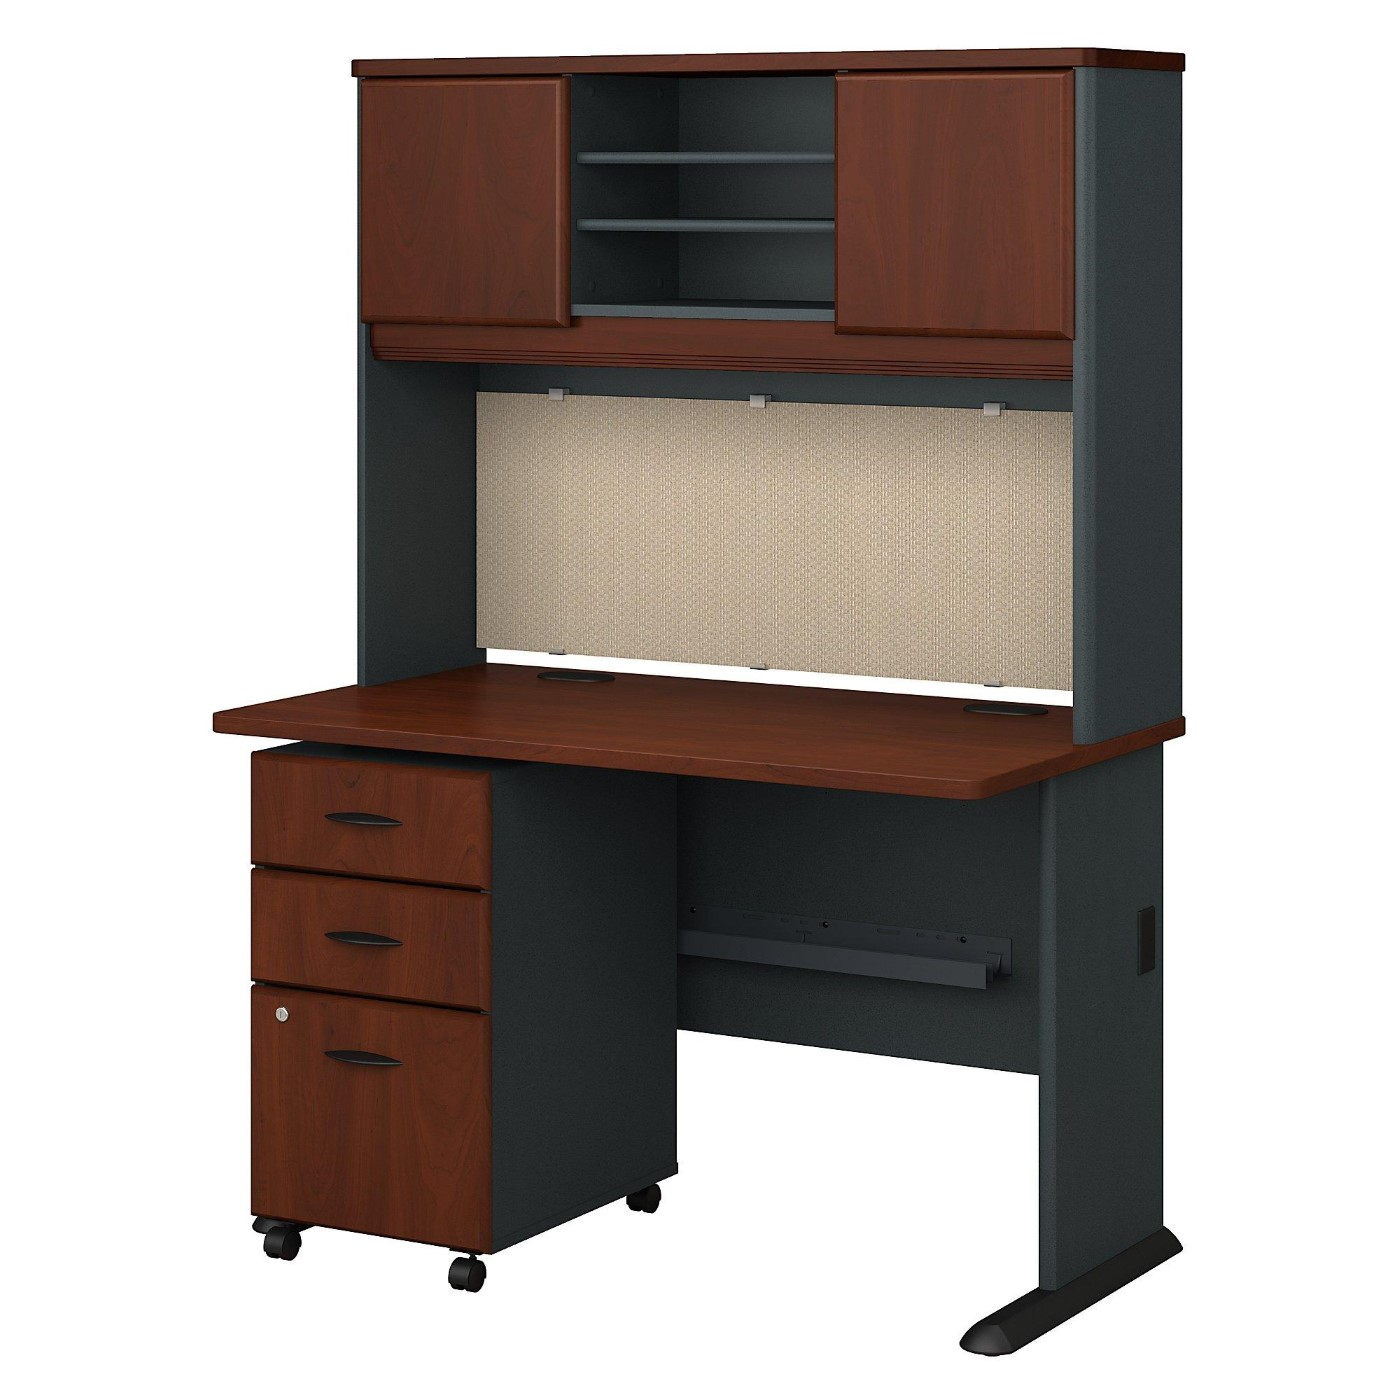 <font color=#c60><b>BUSH BUSINESS FURNITURE SERIES A 48W DESK WITH HUTCH AND MOBILE FILE CABINET #EH-SRA049HCSU. TAA COMPLIANT. FREE SHIPPING</font></b>